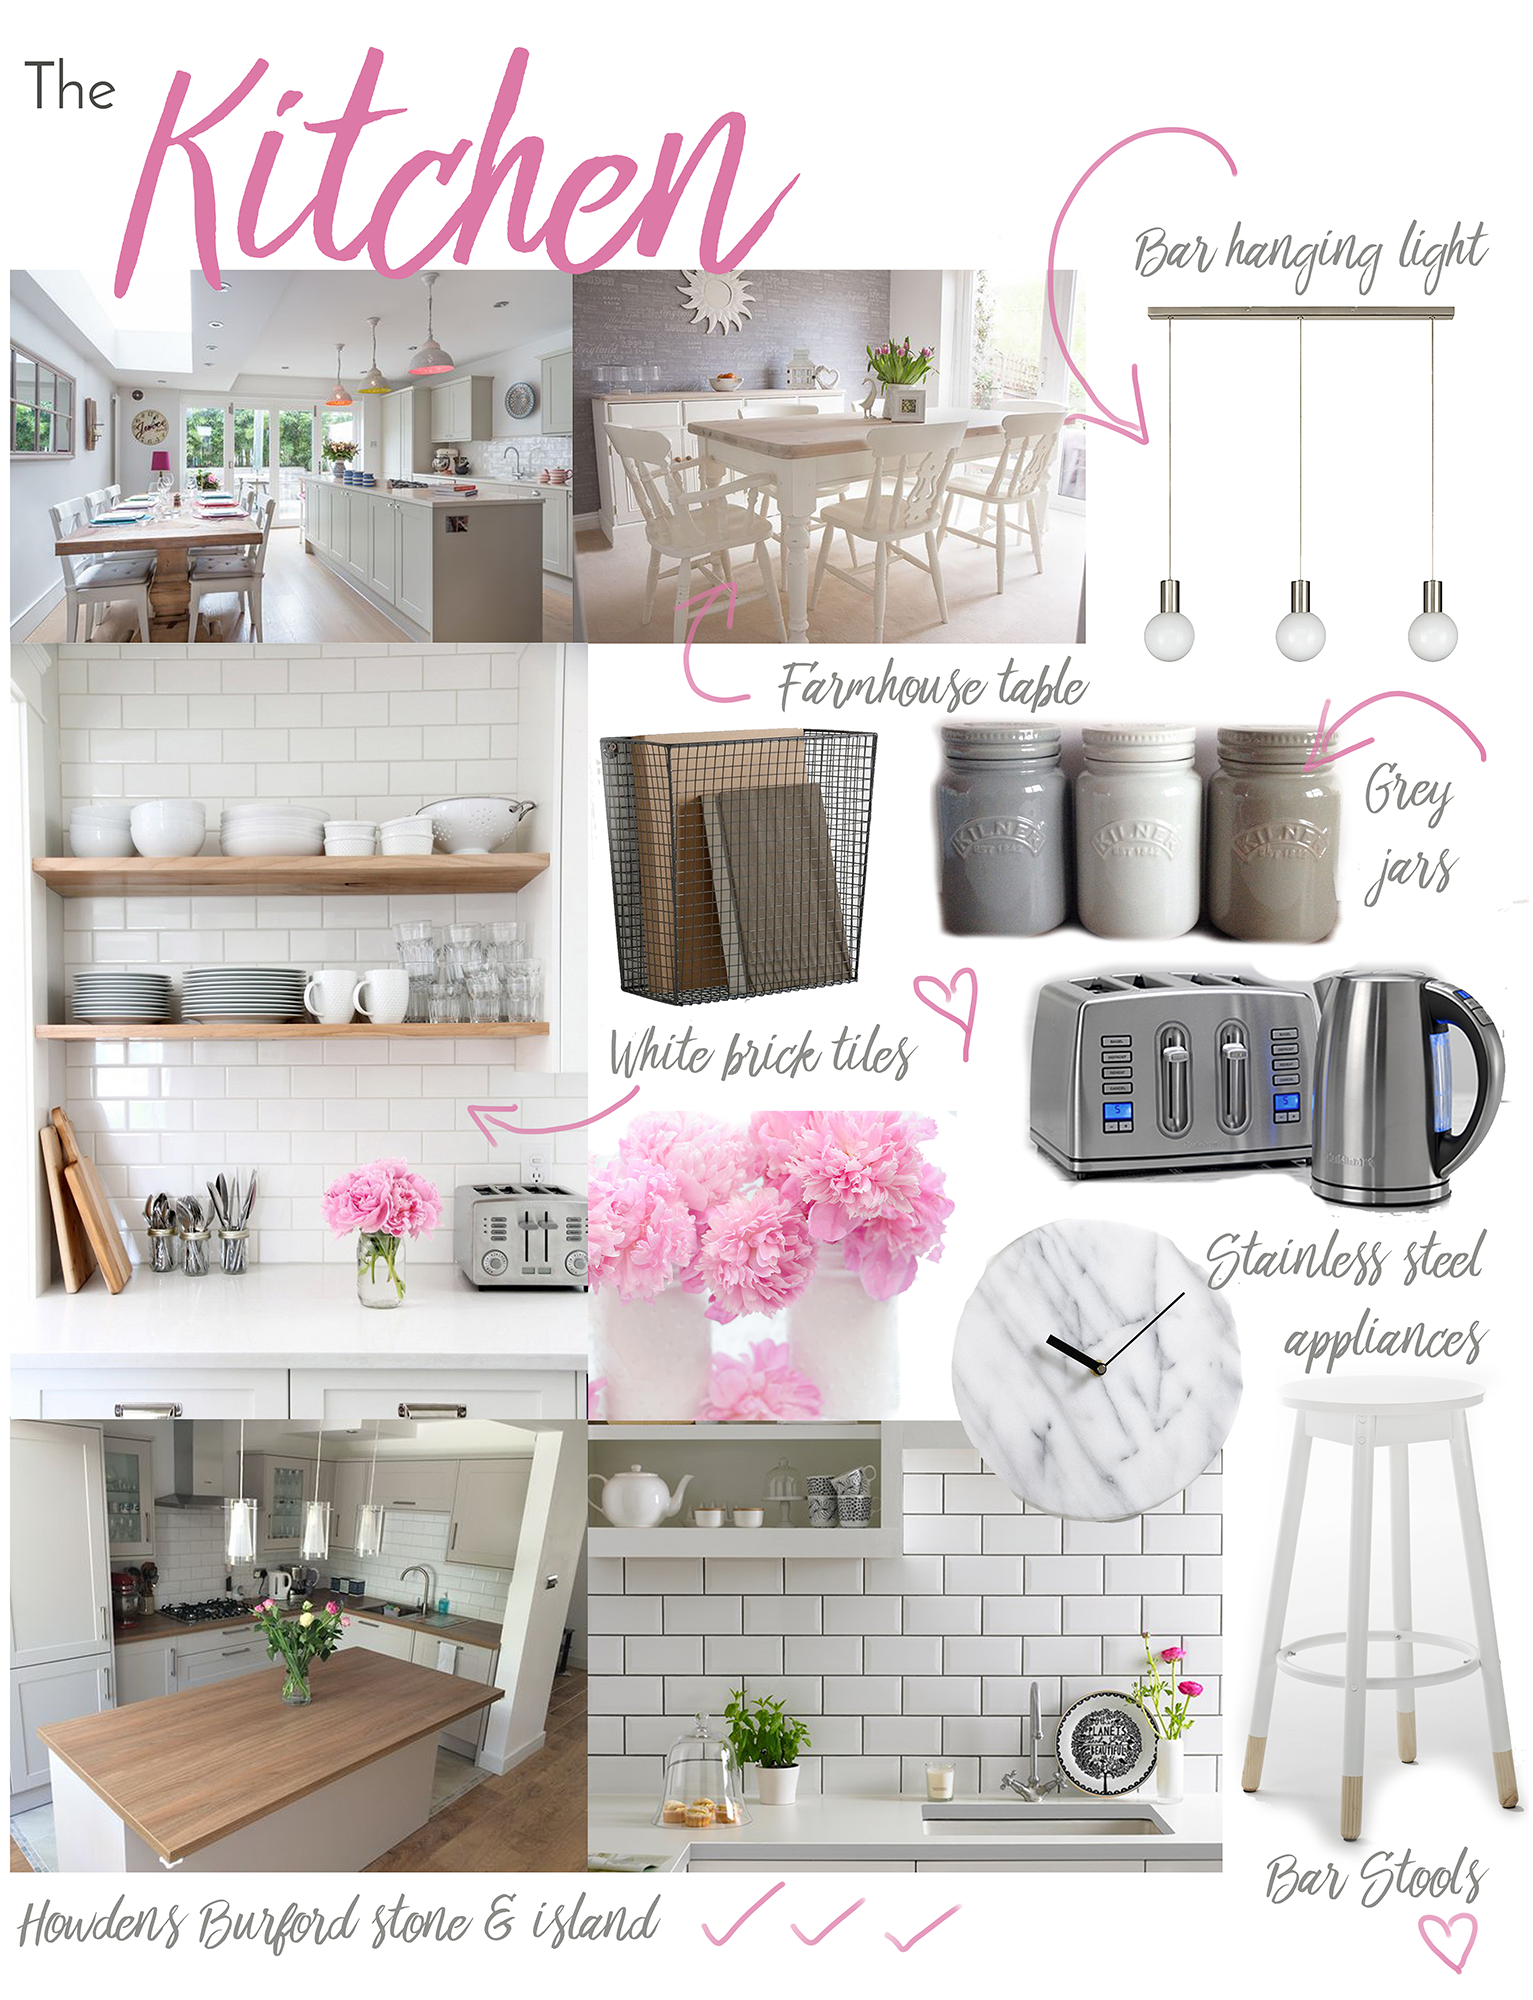 The House Diaries | Kitchen Decor Ideas - Bang on Style